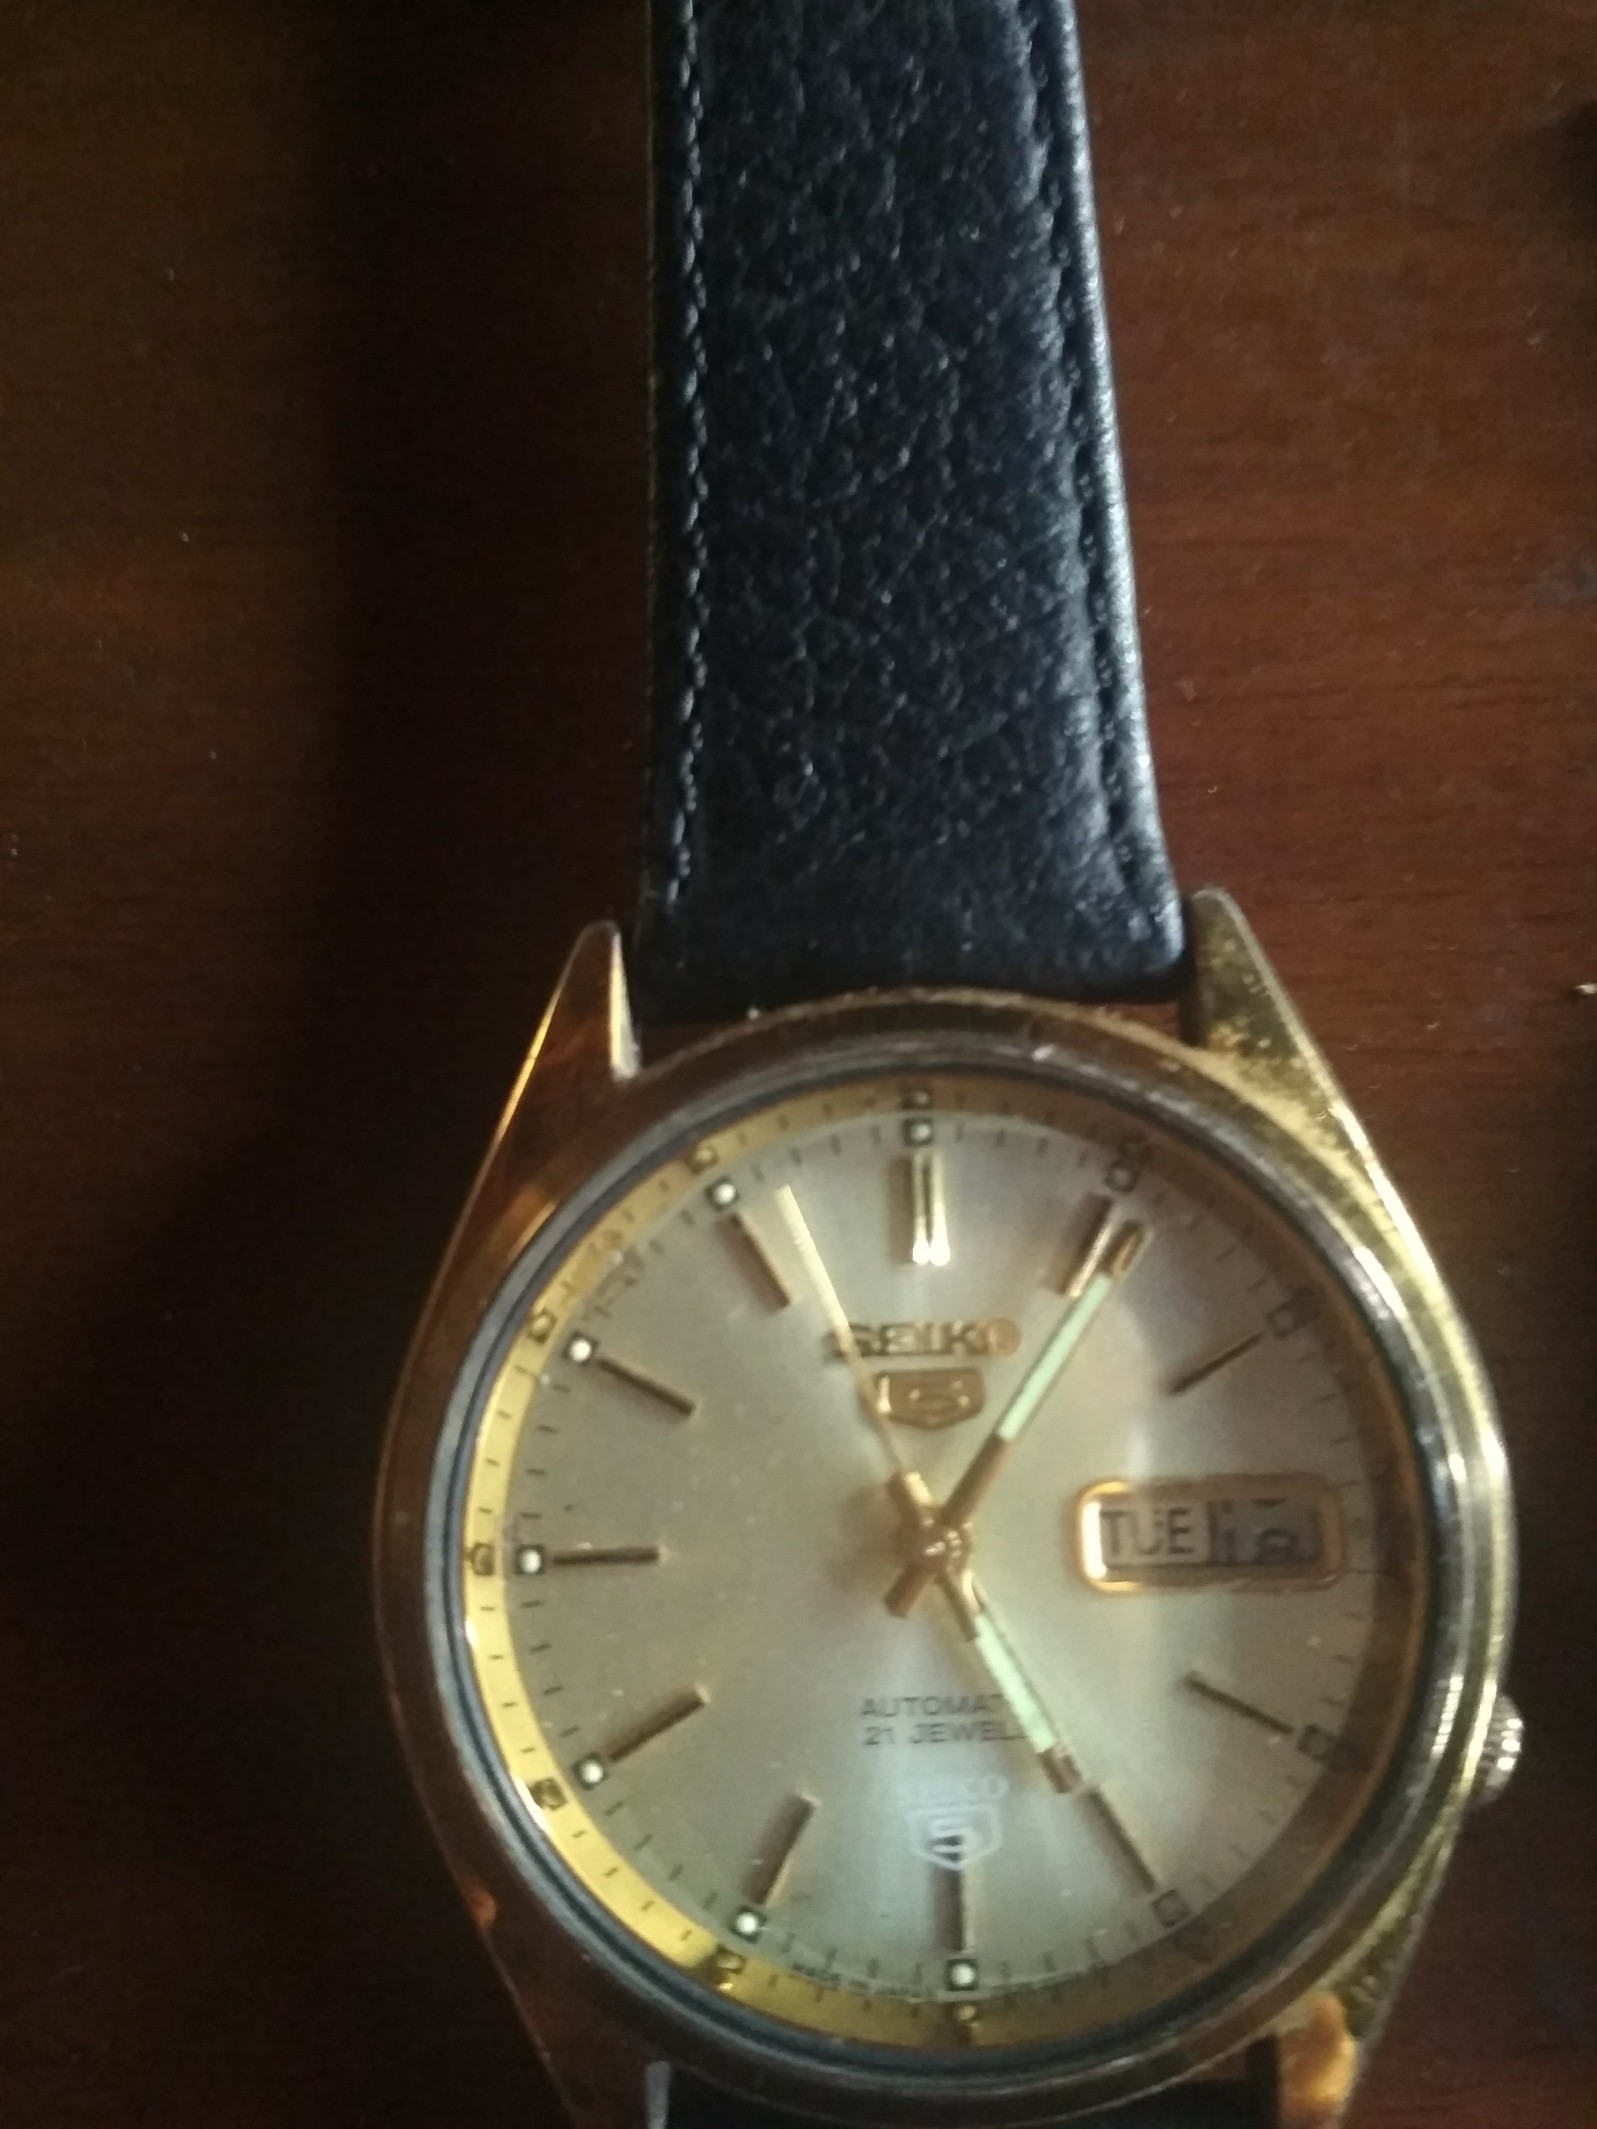 Jam tangan analog seiko 5 21 jewels